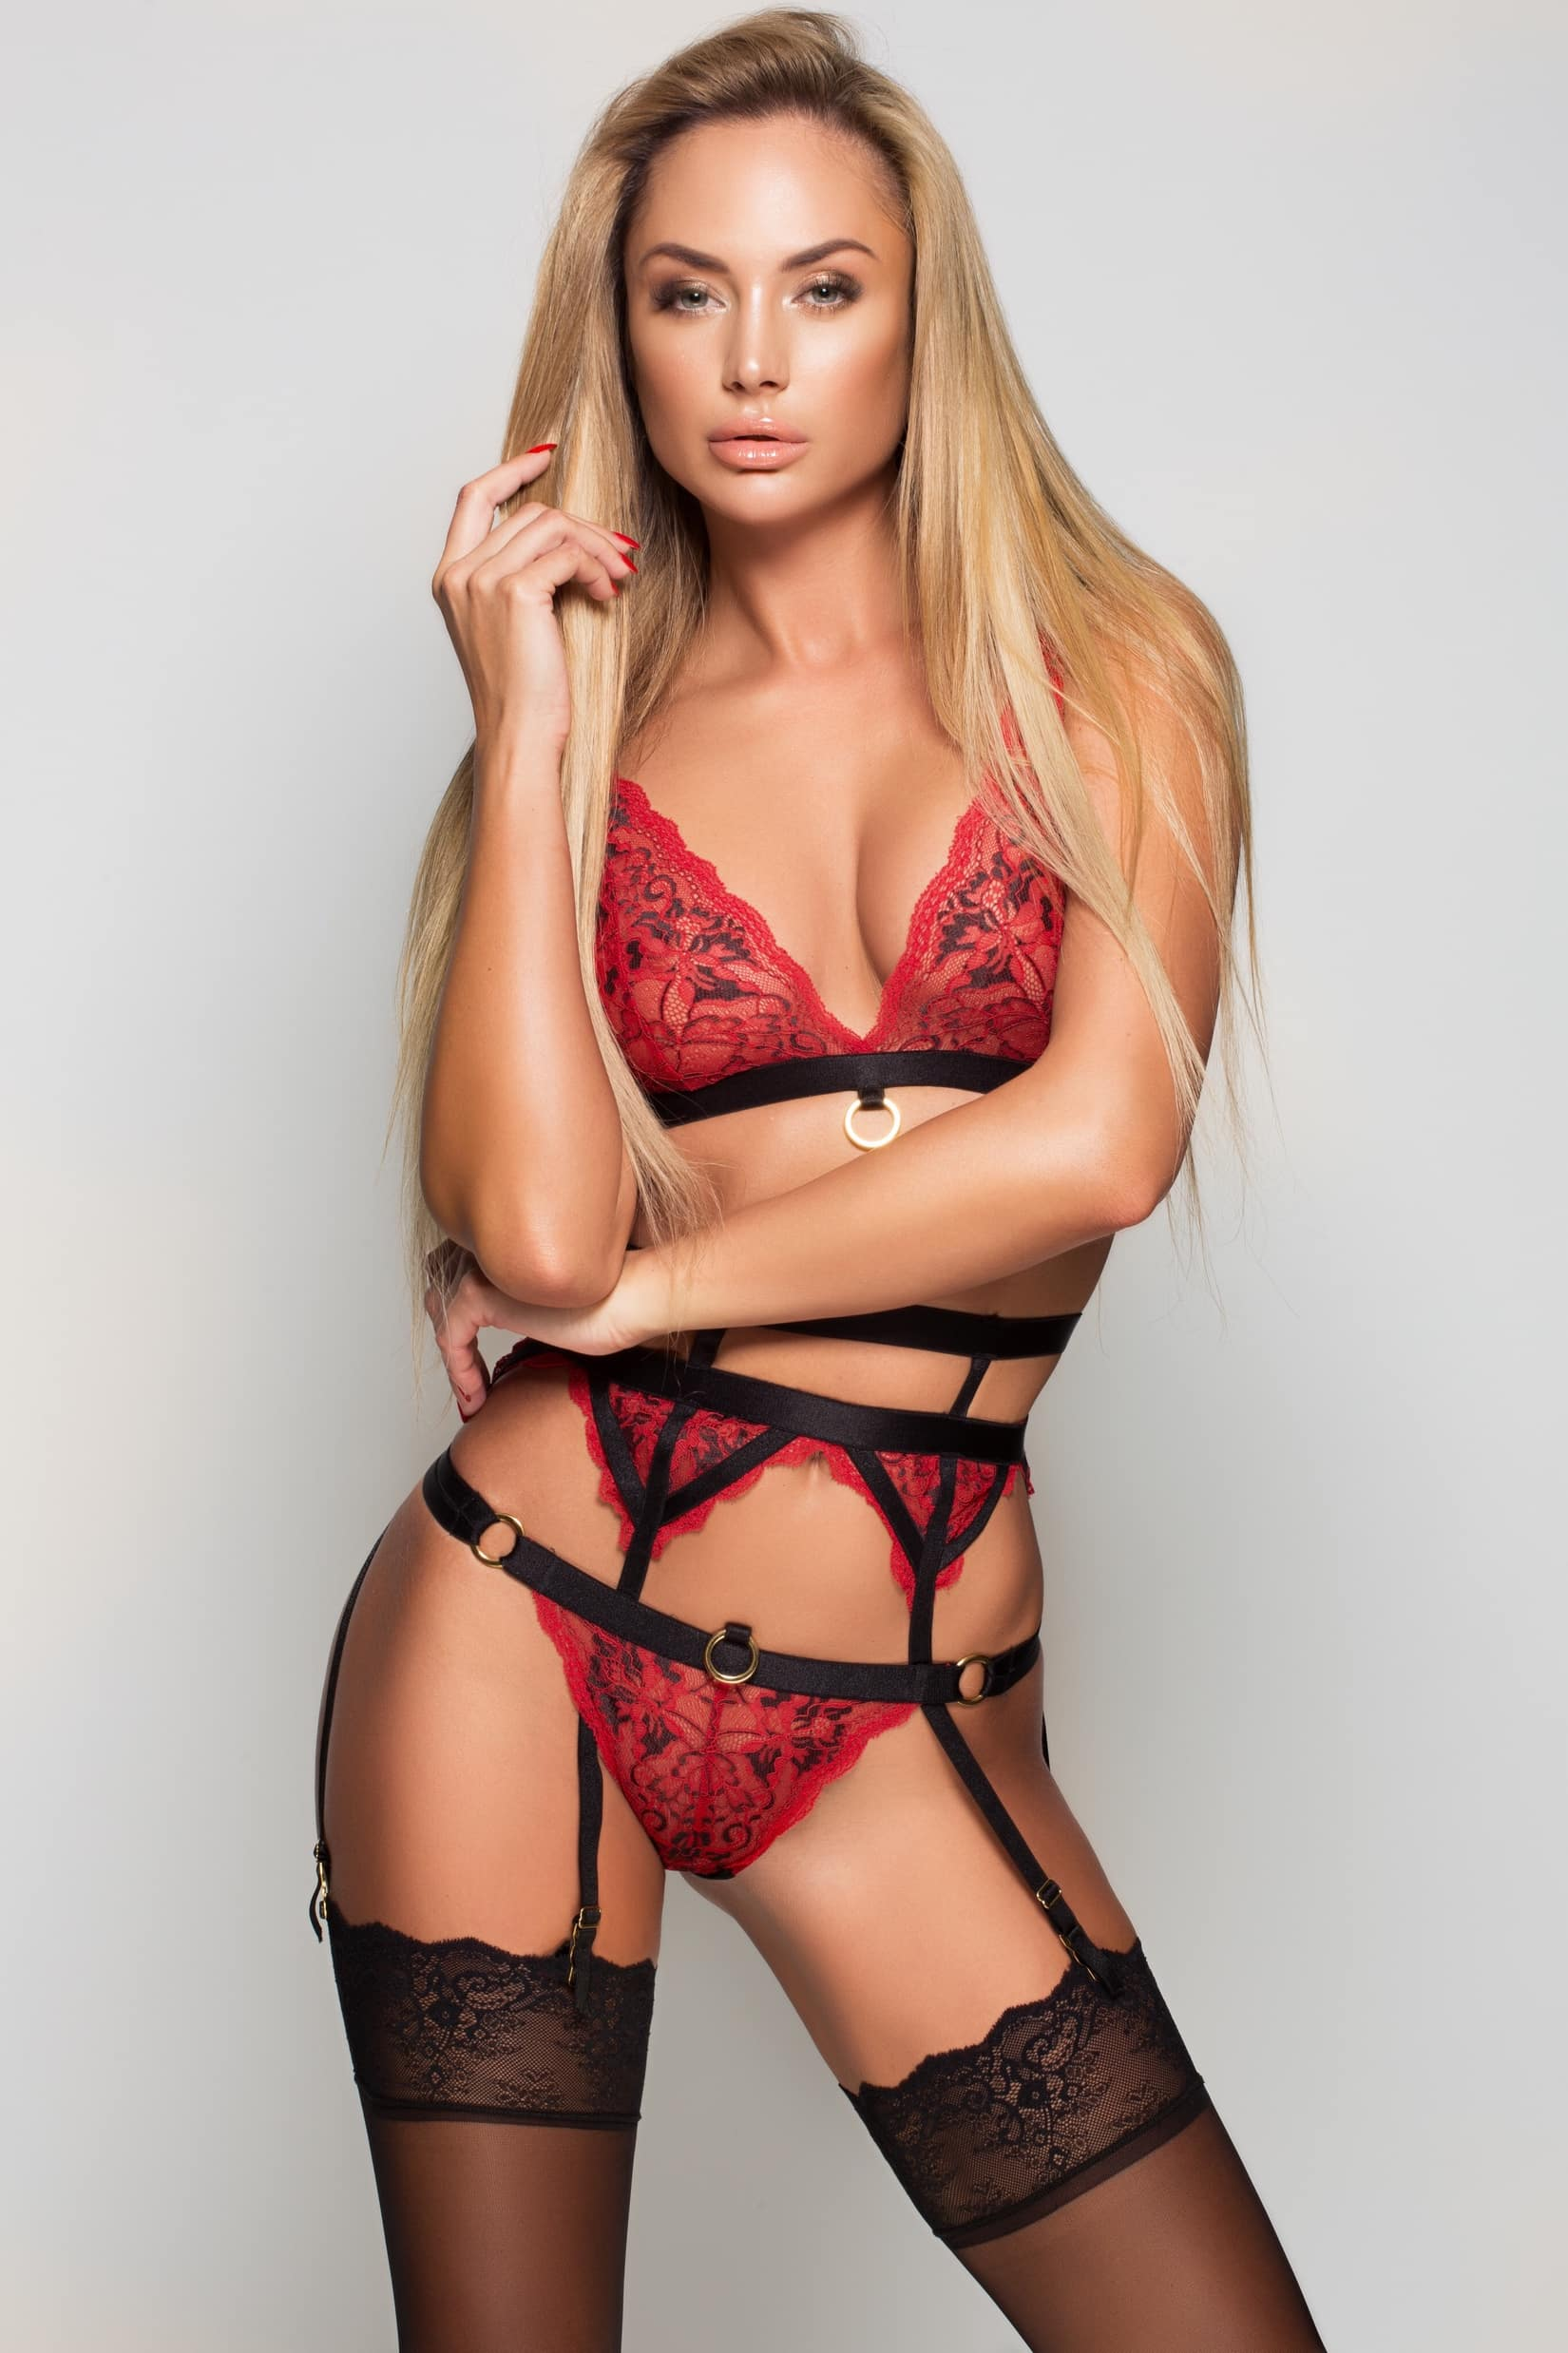 Klaudia South Kensington Escort